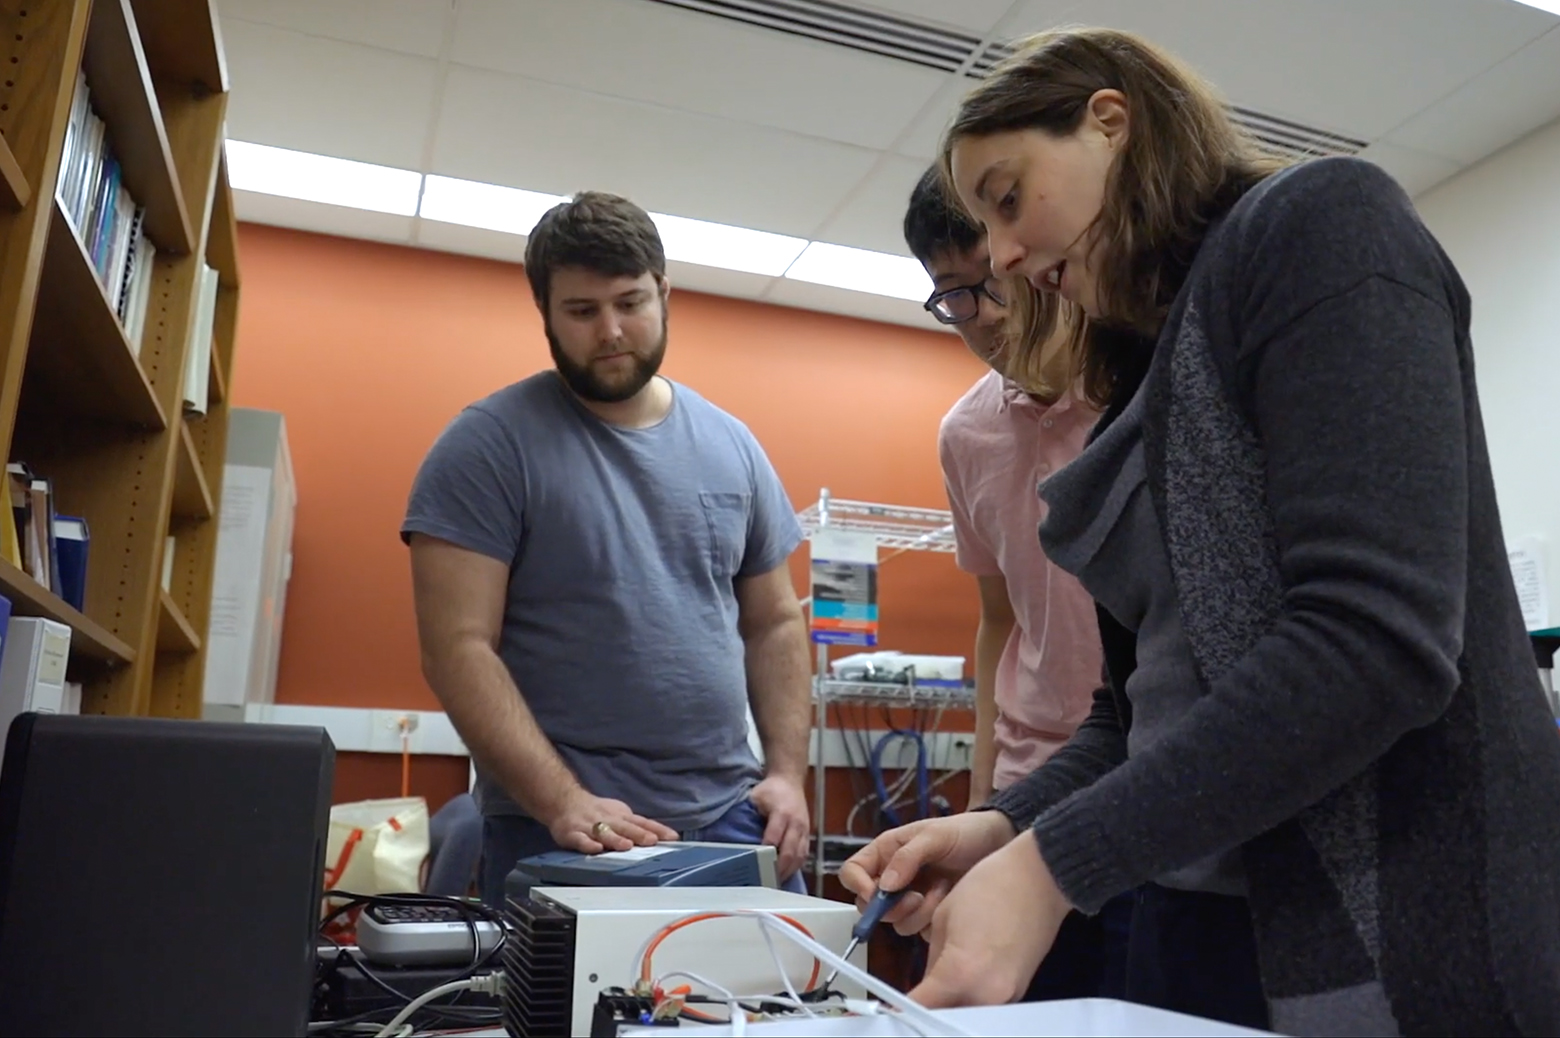 Researchers tinkering with temperature sensors